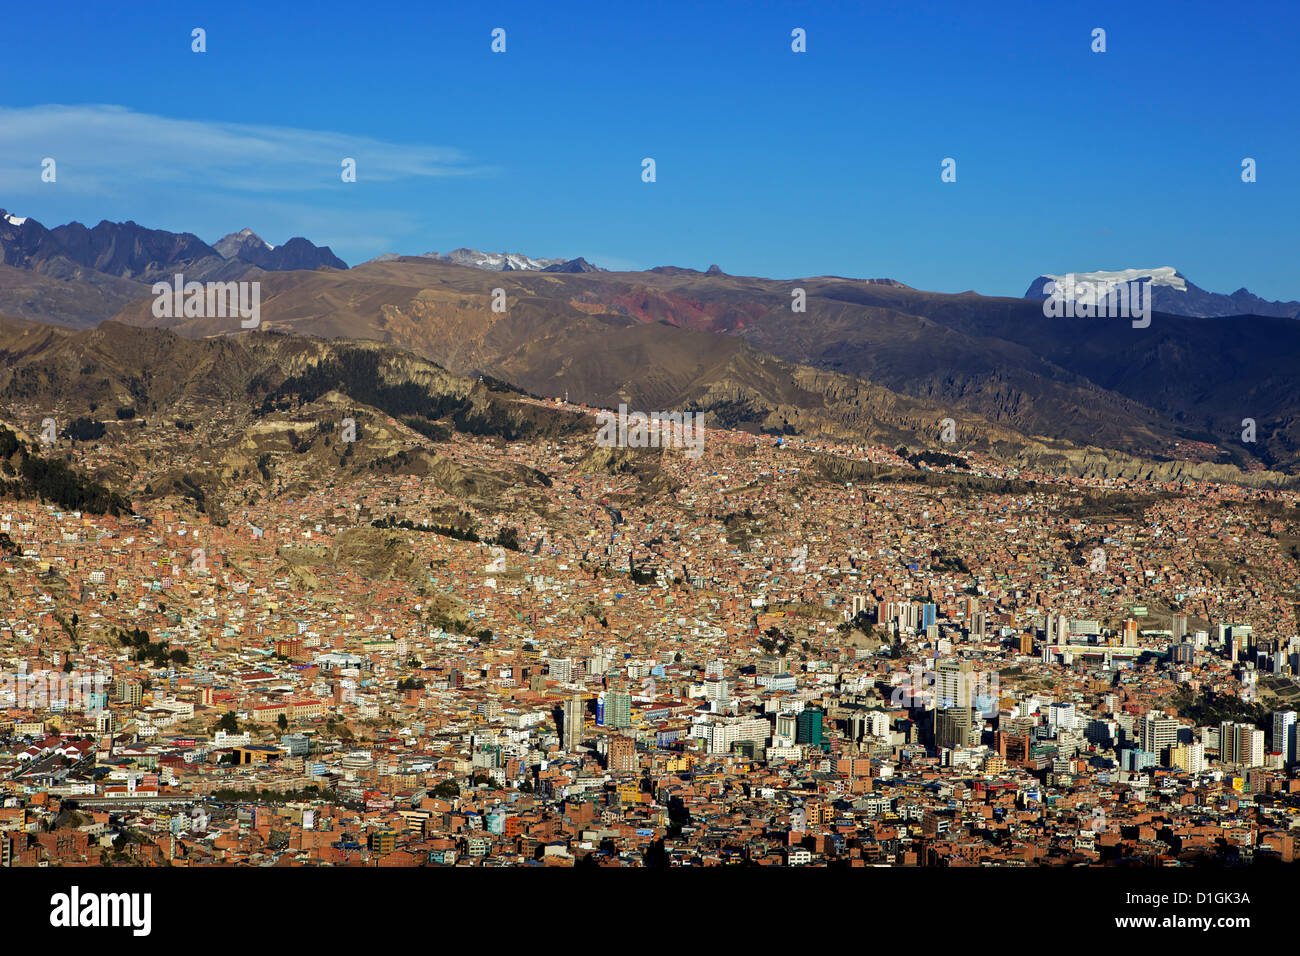 View over La Paz city with Mount Illimani in the background, Bolivia, South America - Stock Image